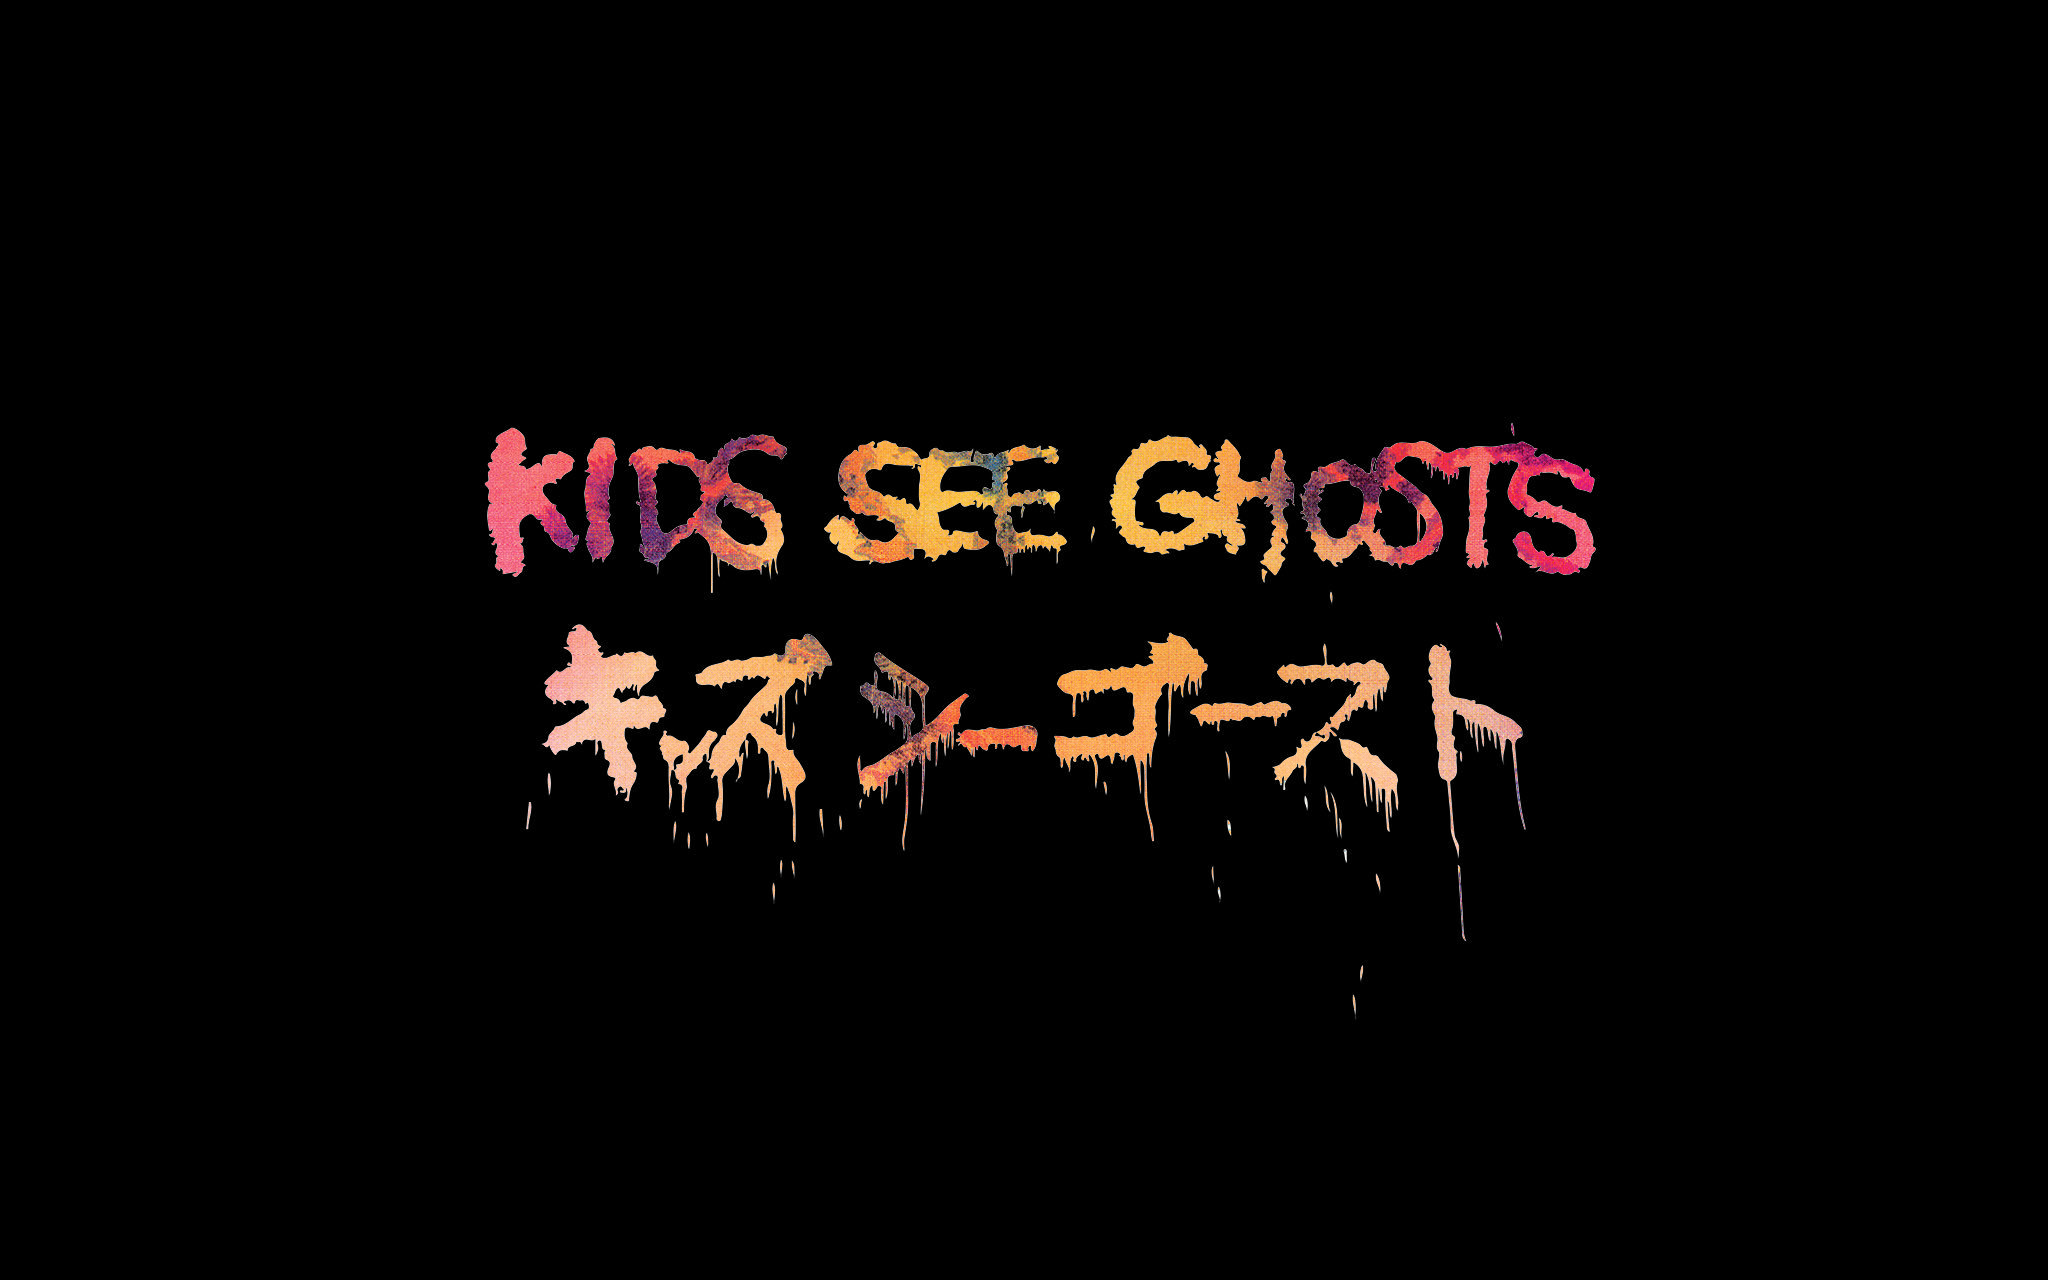 Kids See Ghosts Desktop Wallpaper 1920x1080 Need Trendy Iphone7 Iphone7plus Case Check Ou Aesthetic Desktop Wallpaper Desktop Wallpaper Design Rap Wallpaper